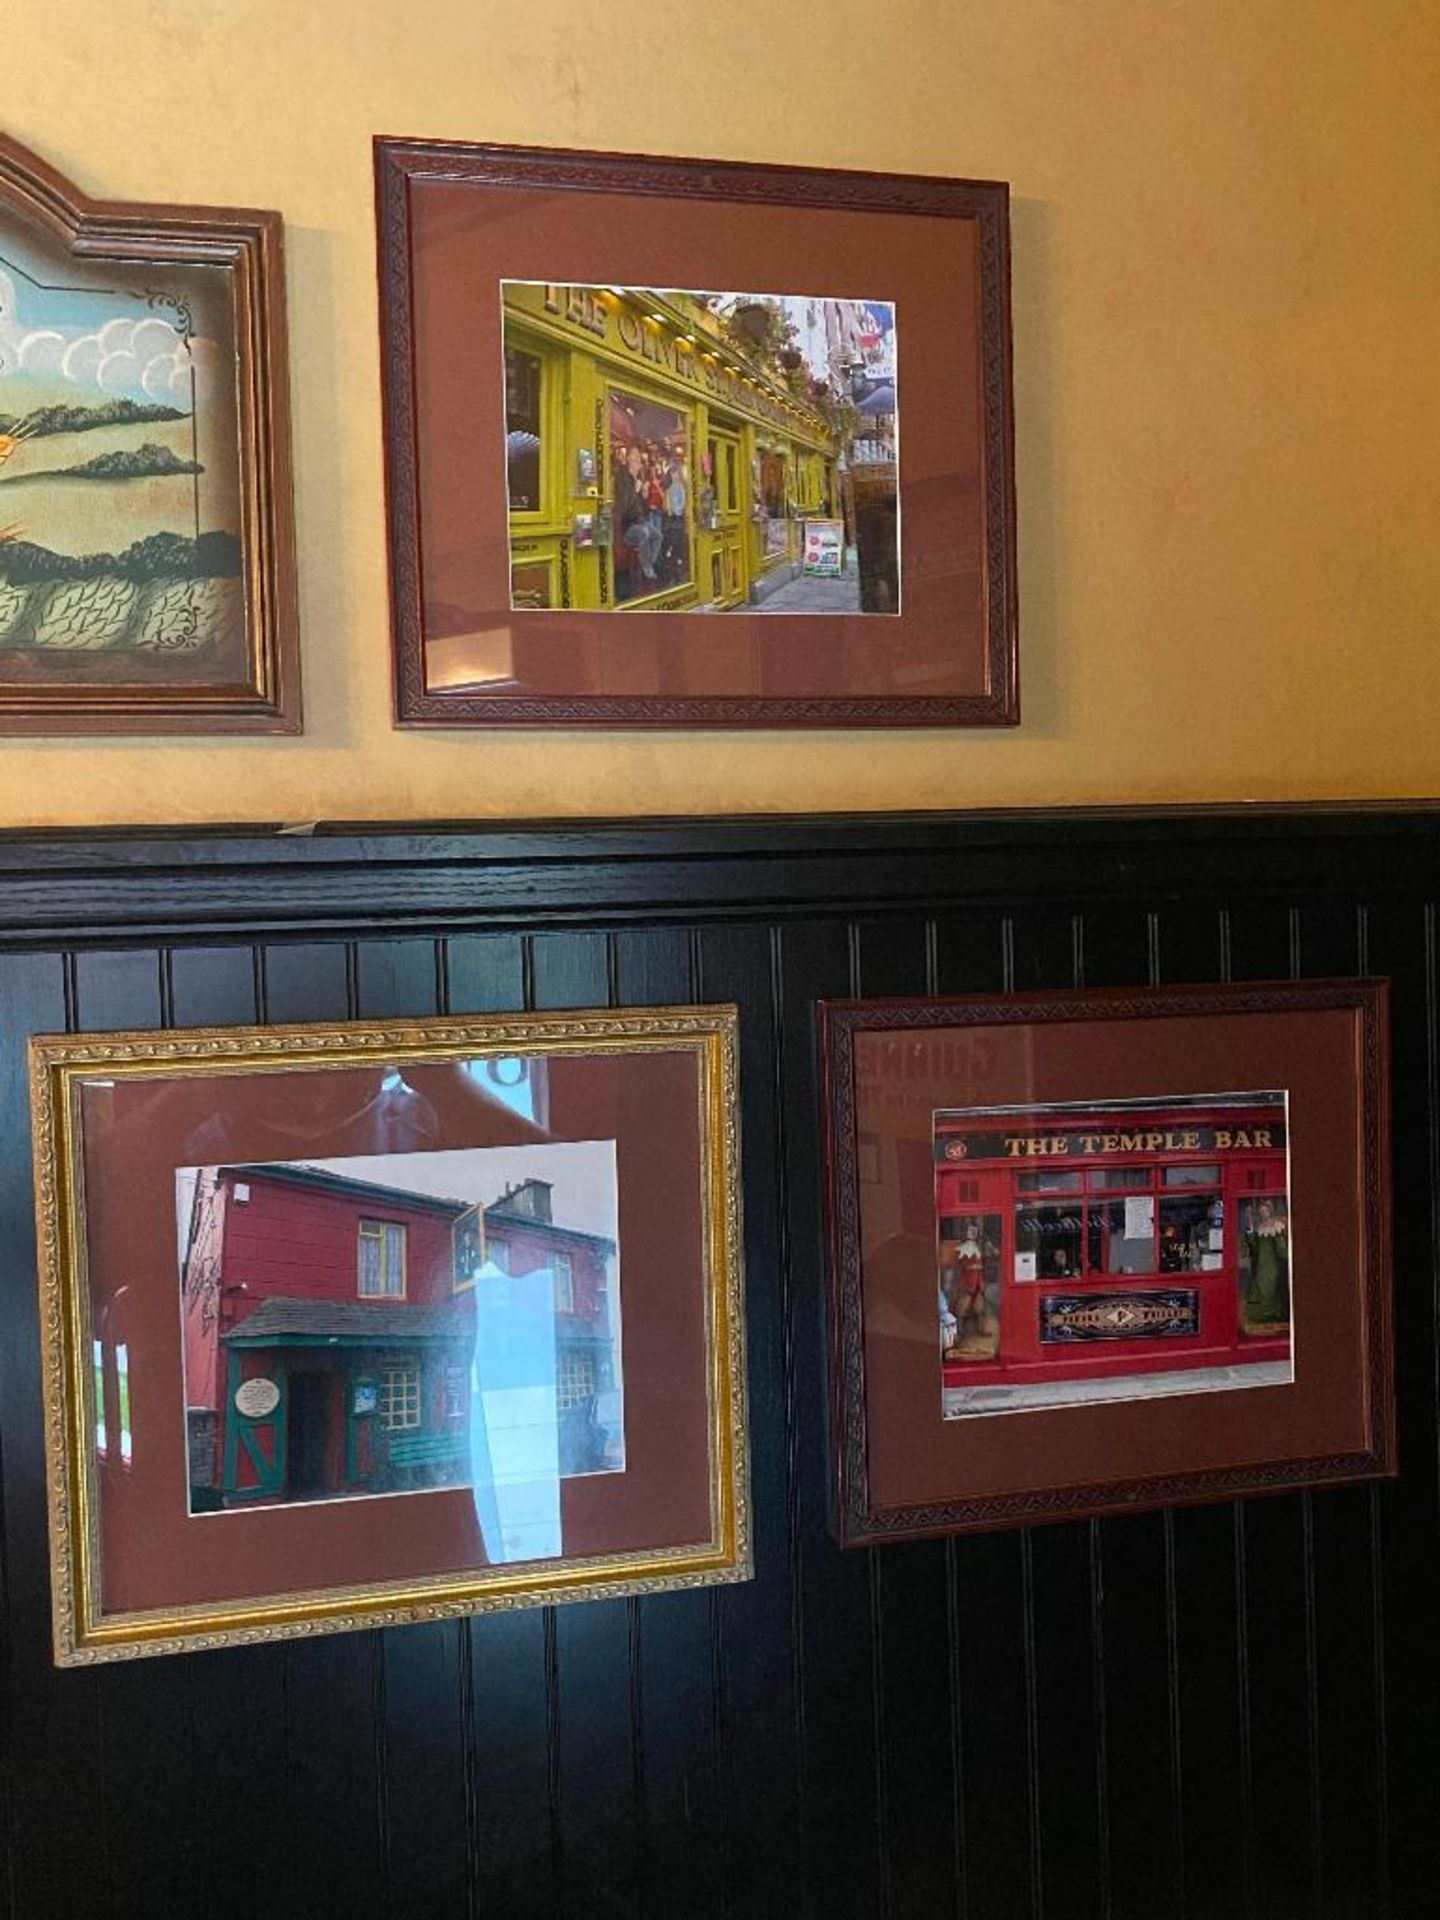 LOT OF (7) FRAMED MEMORABILIA PHOTOS & (2) WOODEN GUINNESS PLAQUES - NOTE REQUIRES REMOVAL FROM WALL - Image 3 of 5